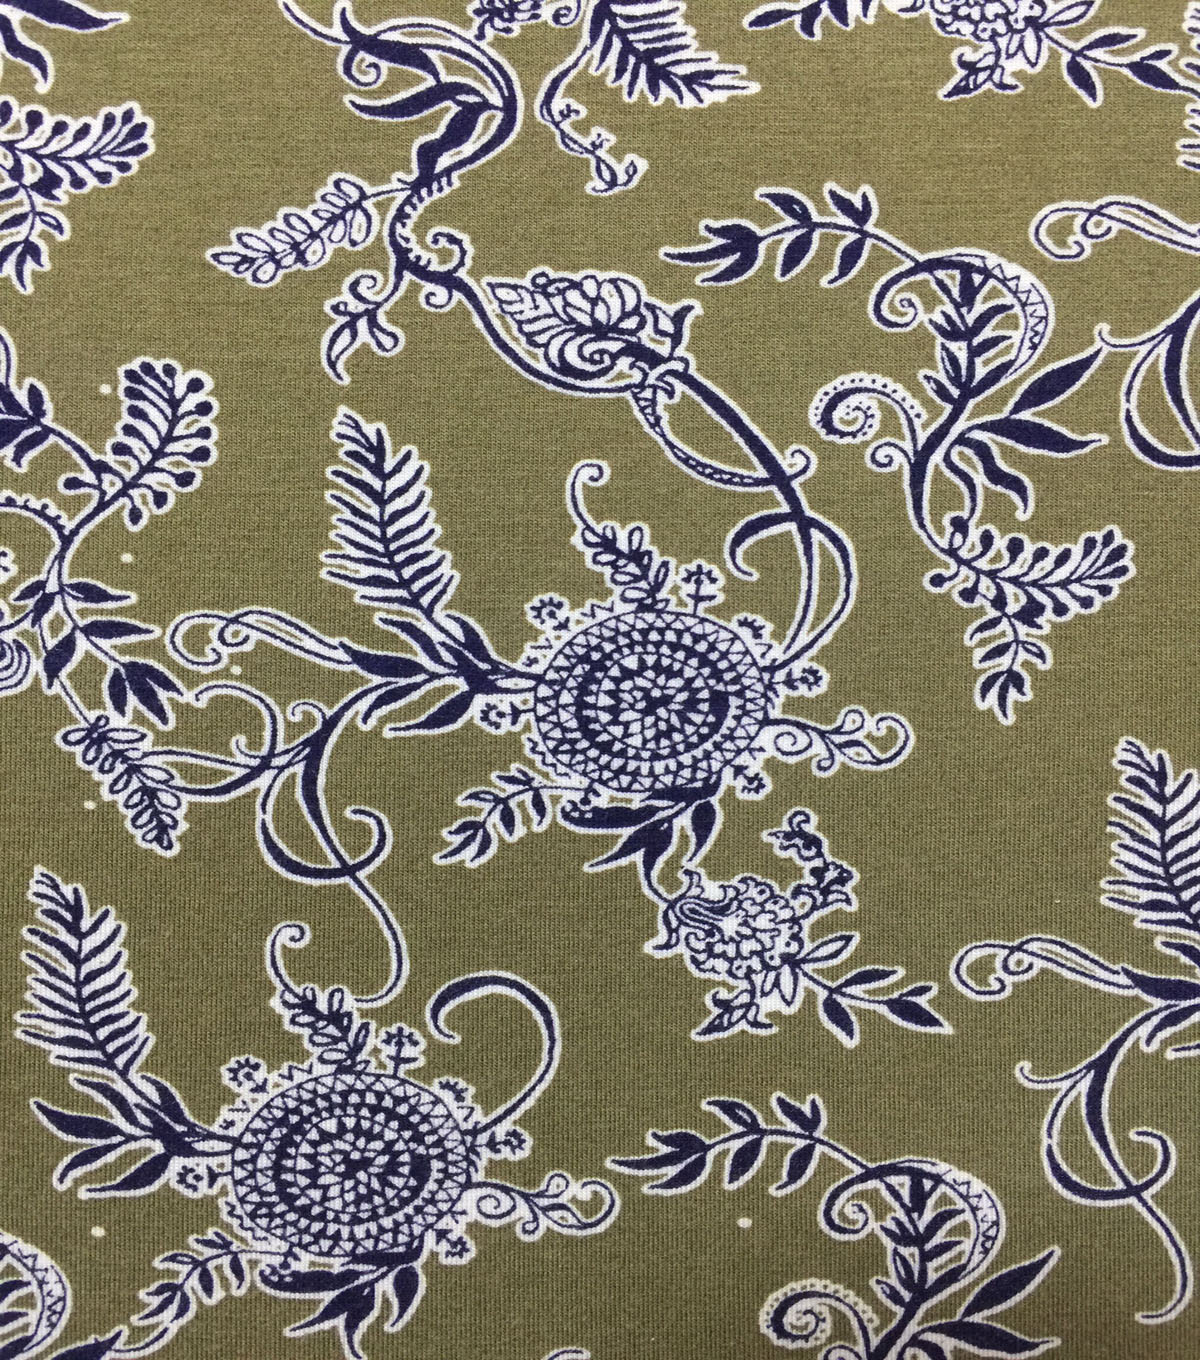 Knit Prints Rayon Spandex Fabric-Olive Paisley Floral